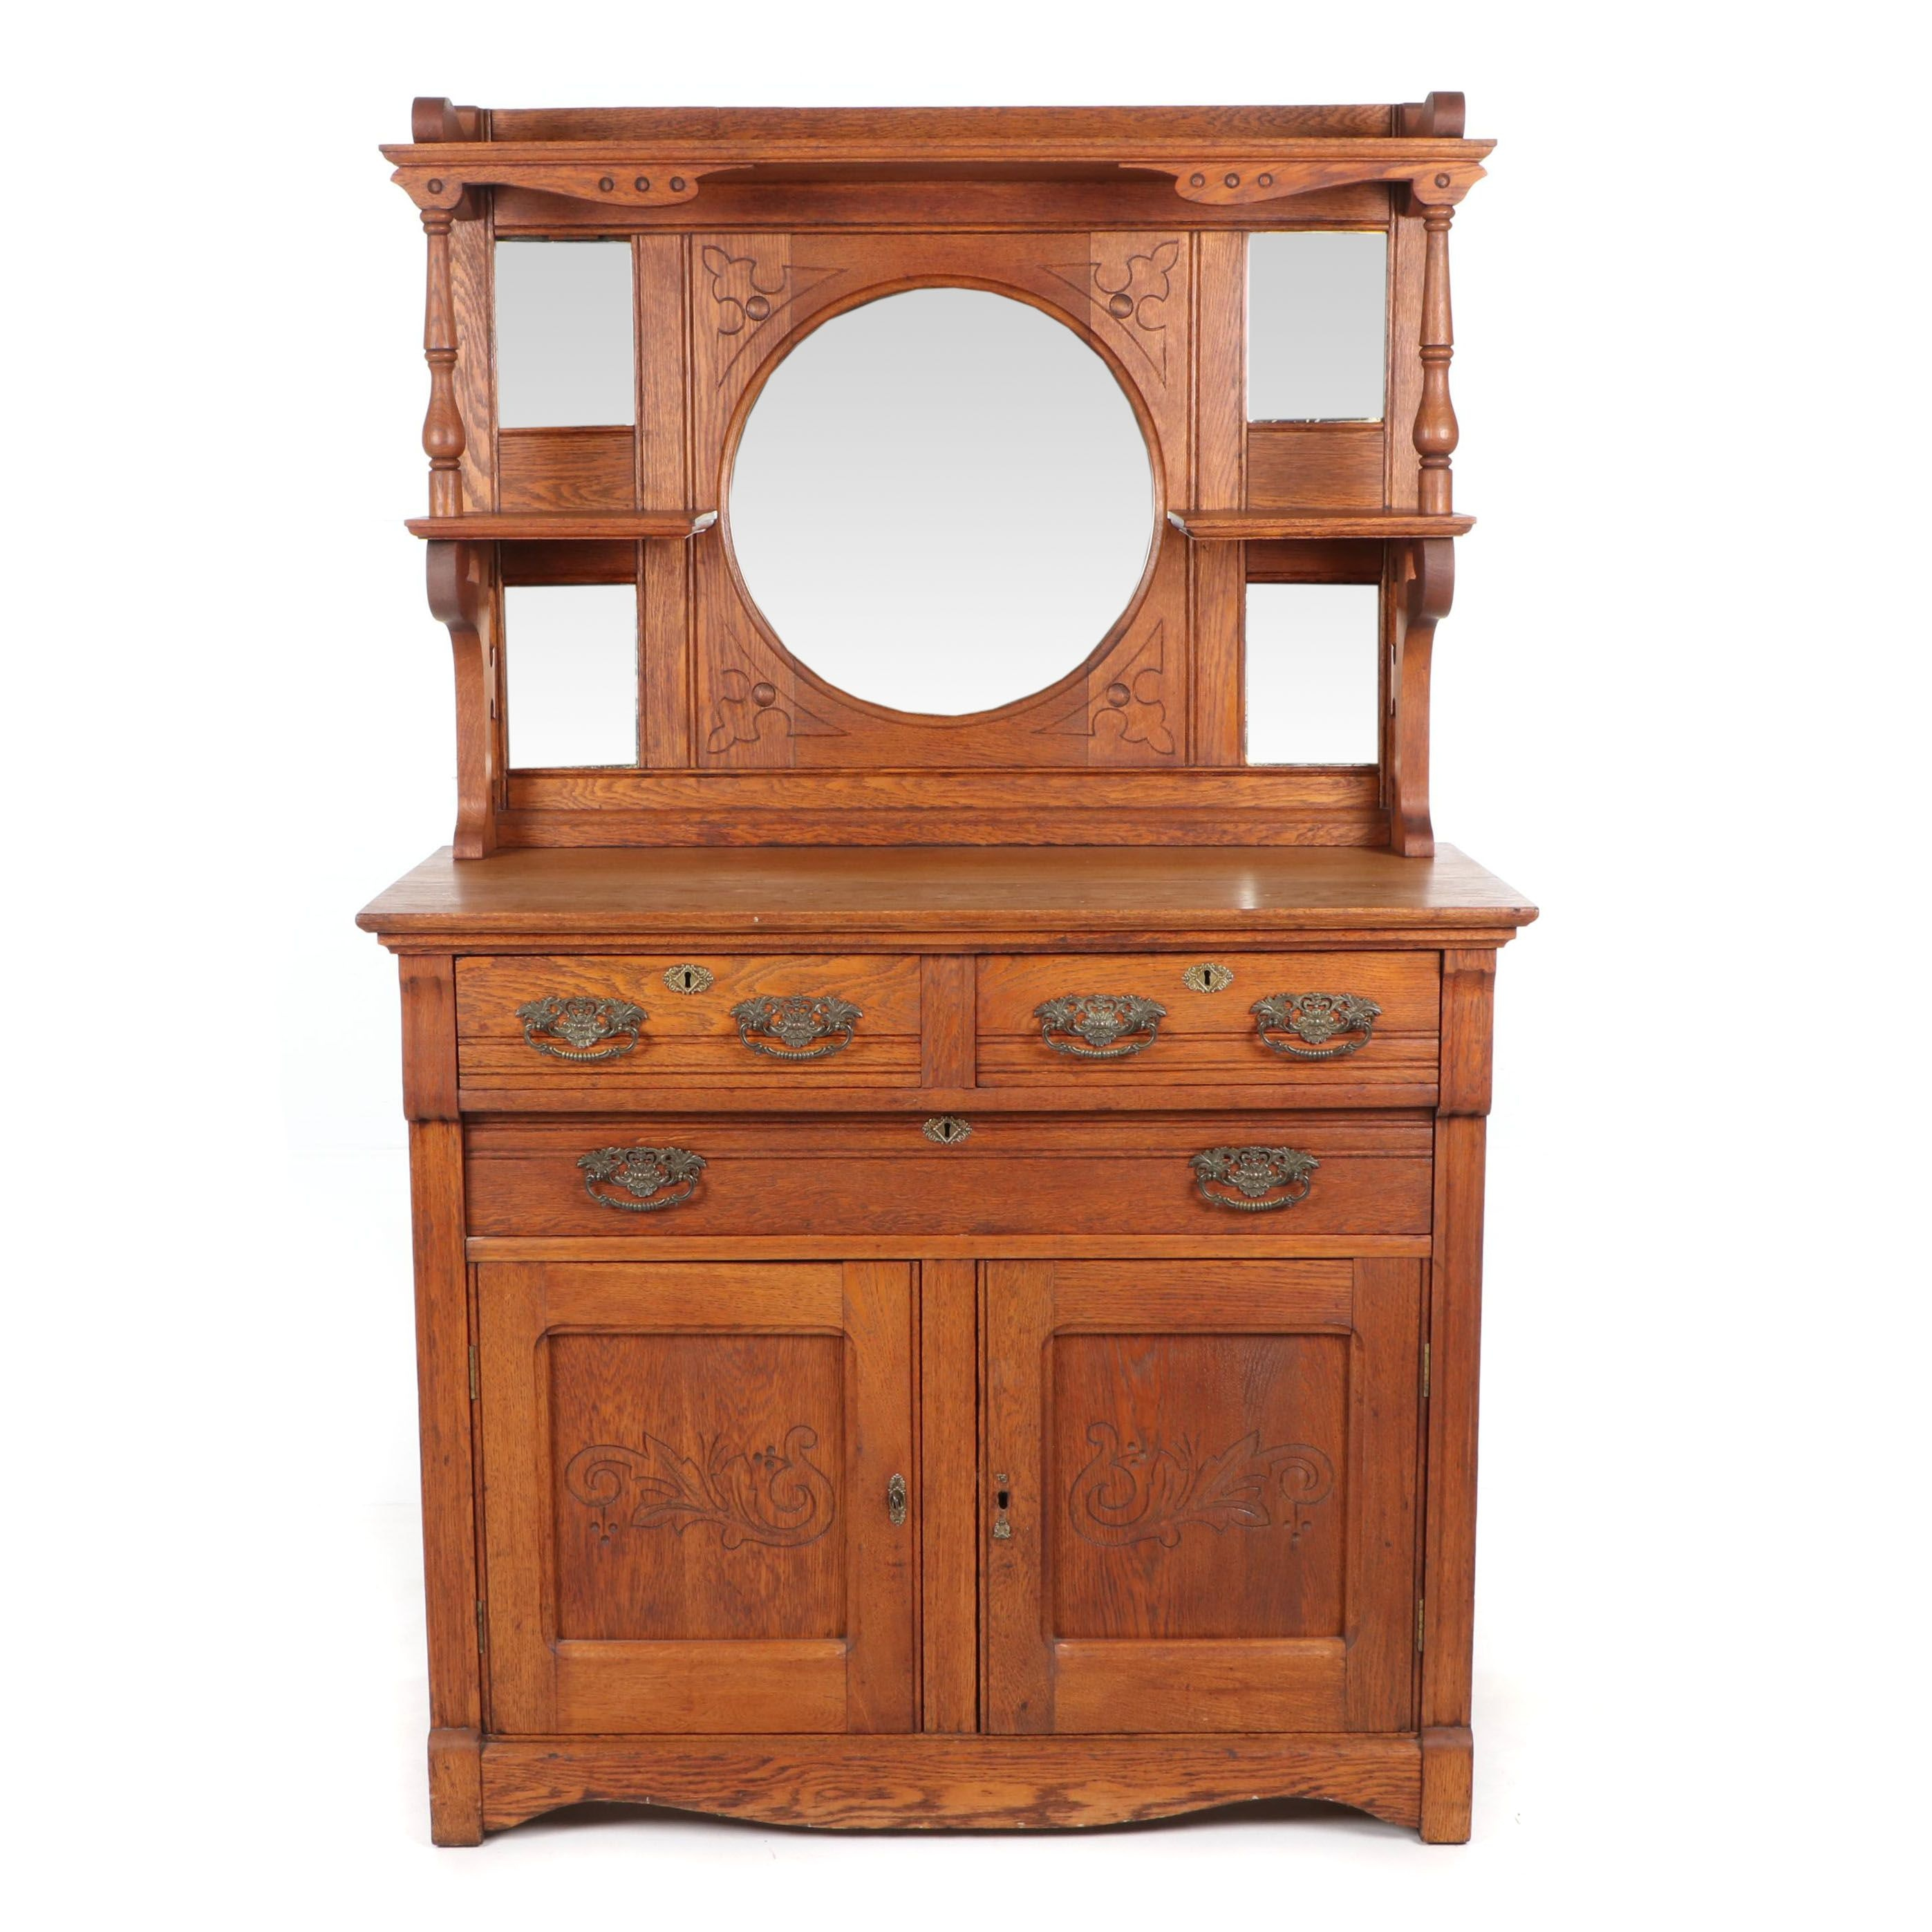 Victorian Oak Sideboard with Mirrored Gallery, Mid-19th Century